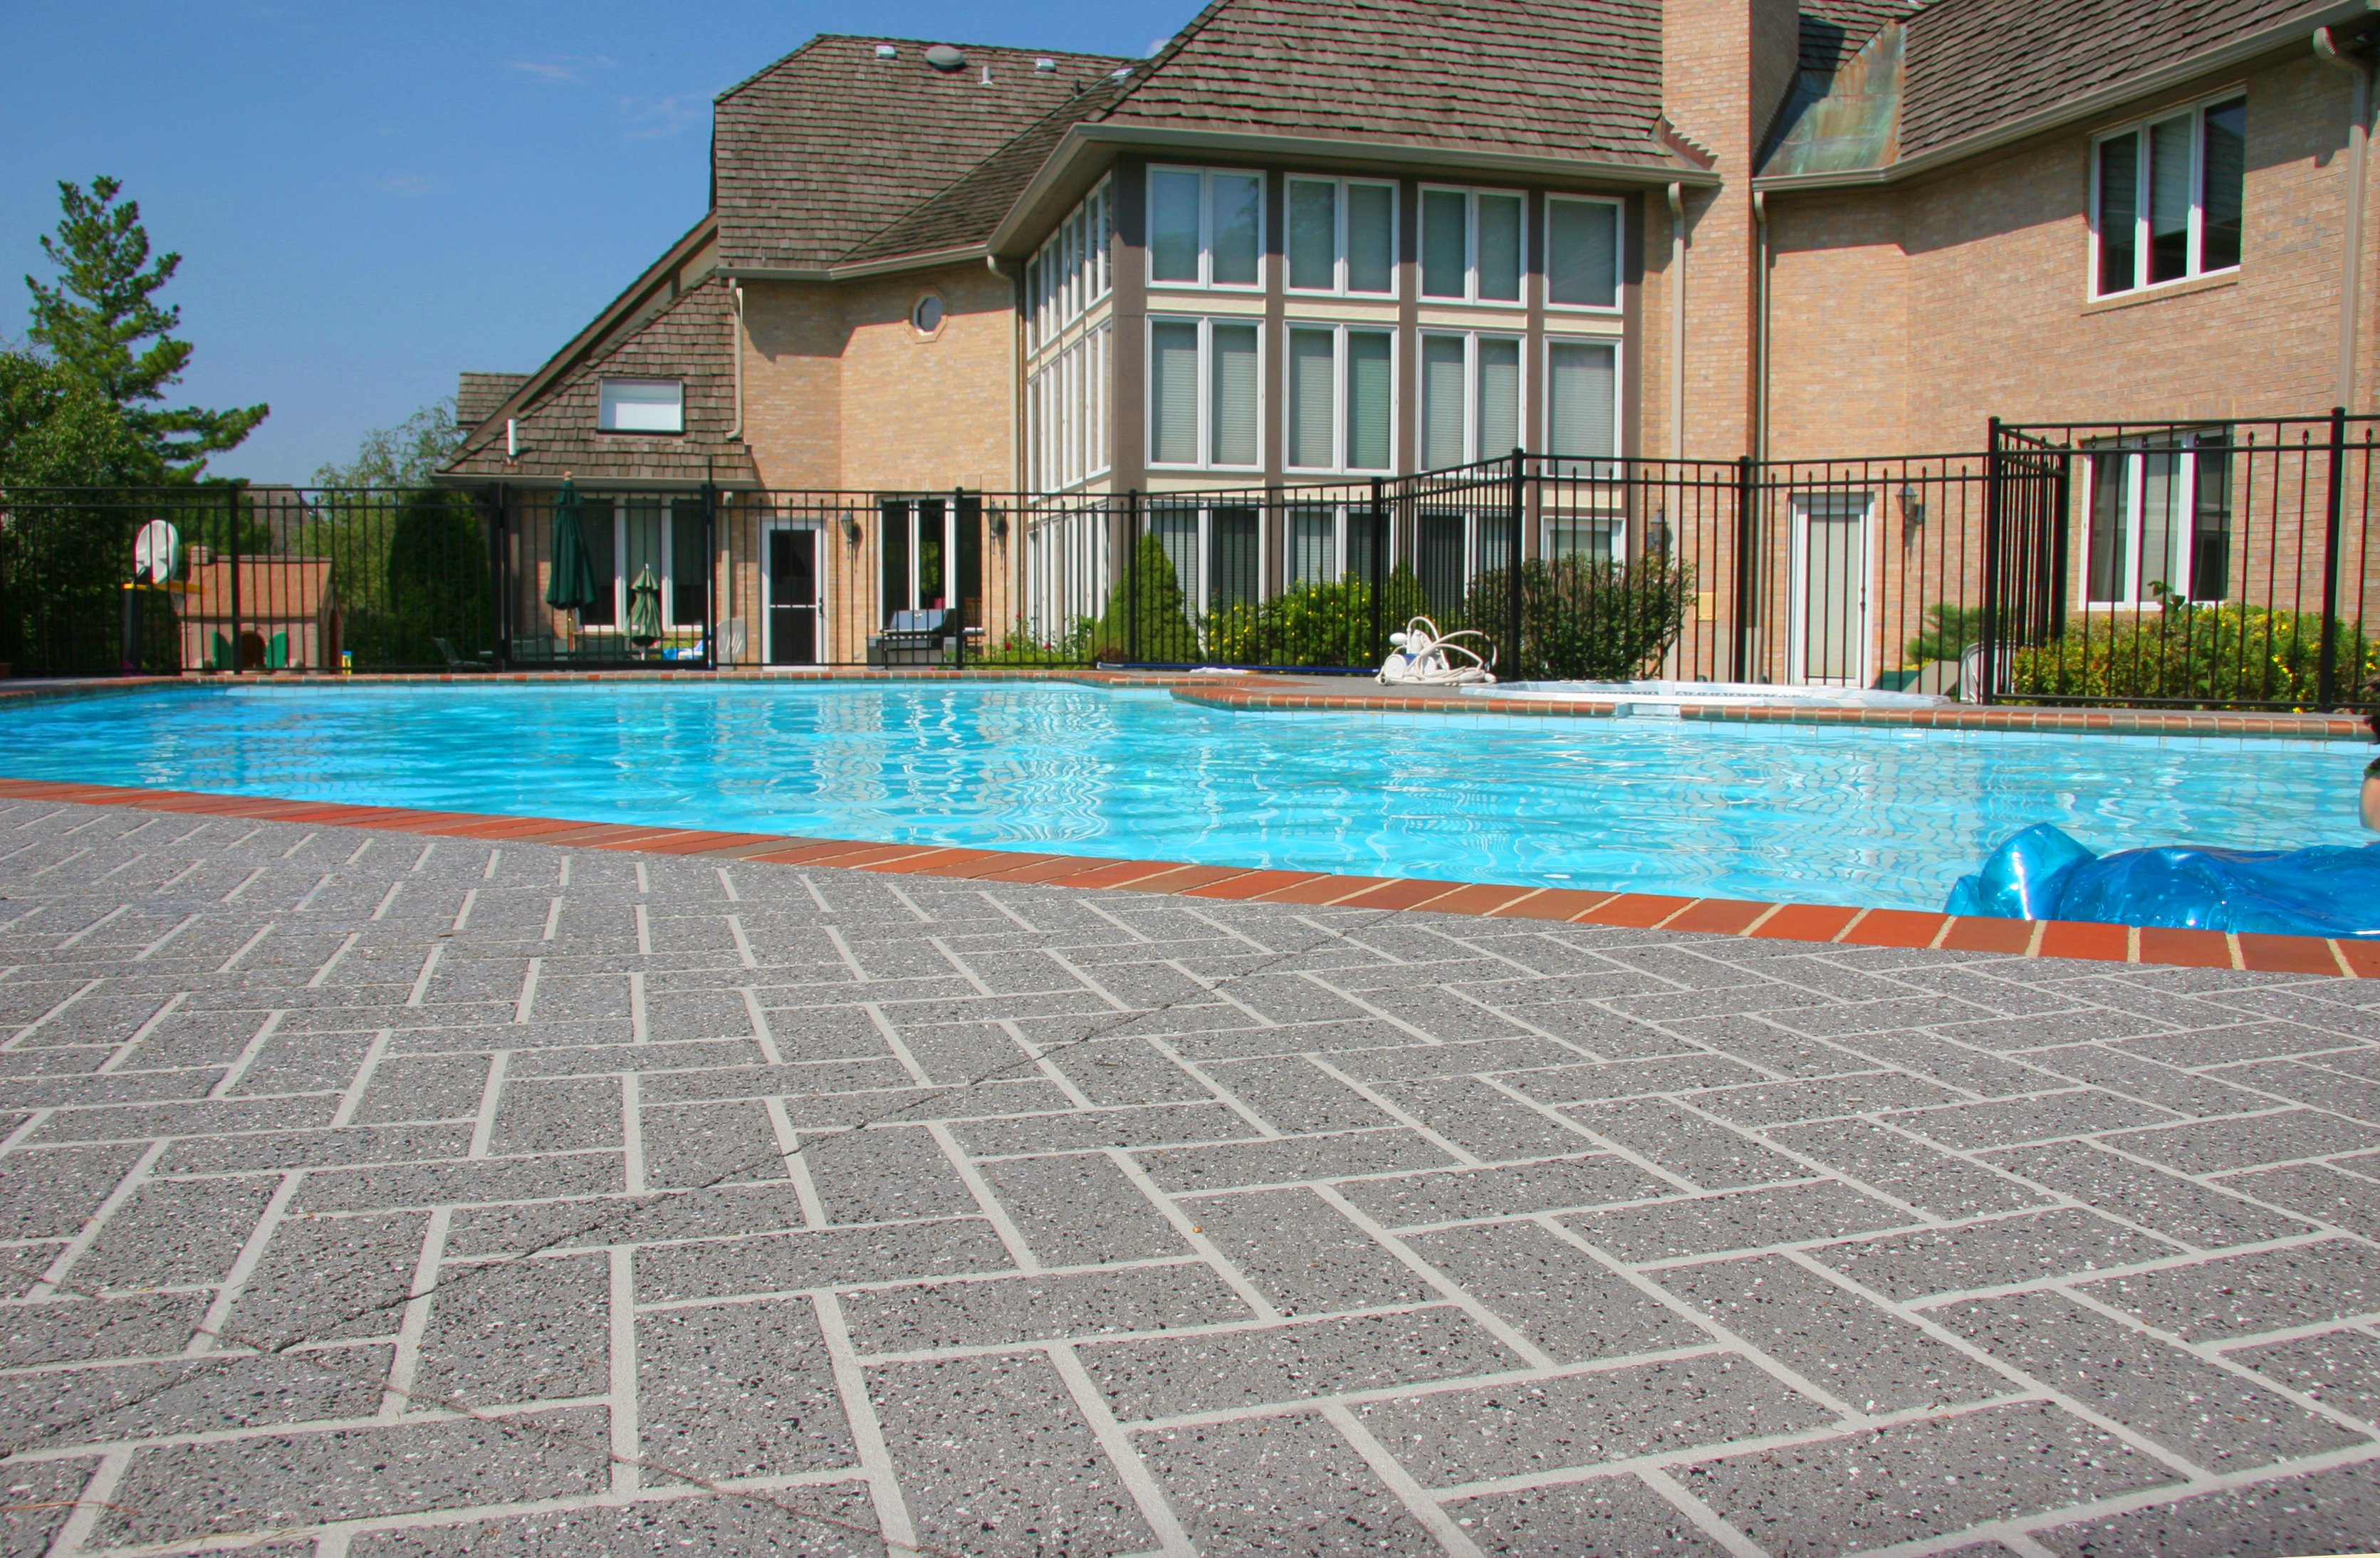 acrylic-cement-coating-pool-deck